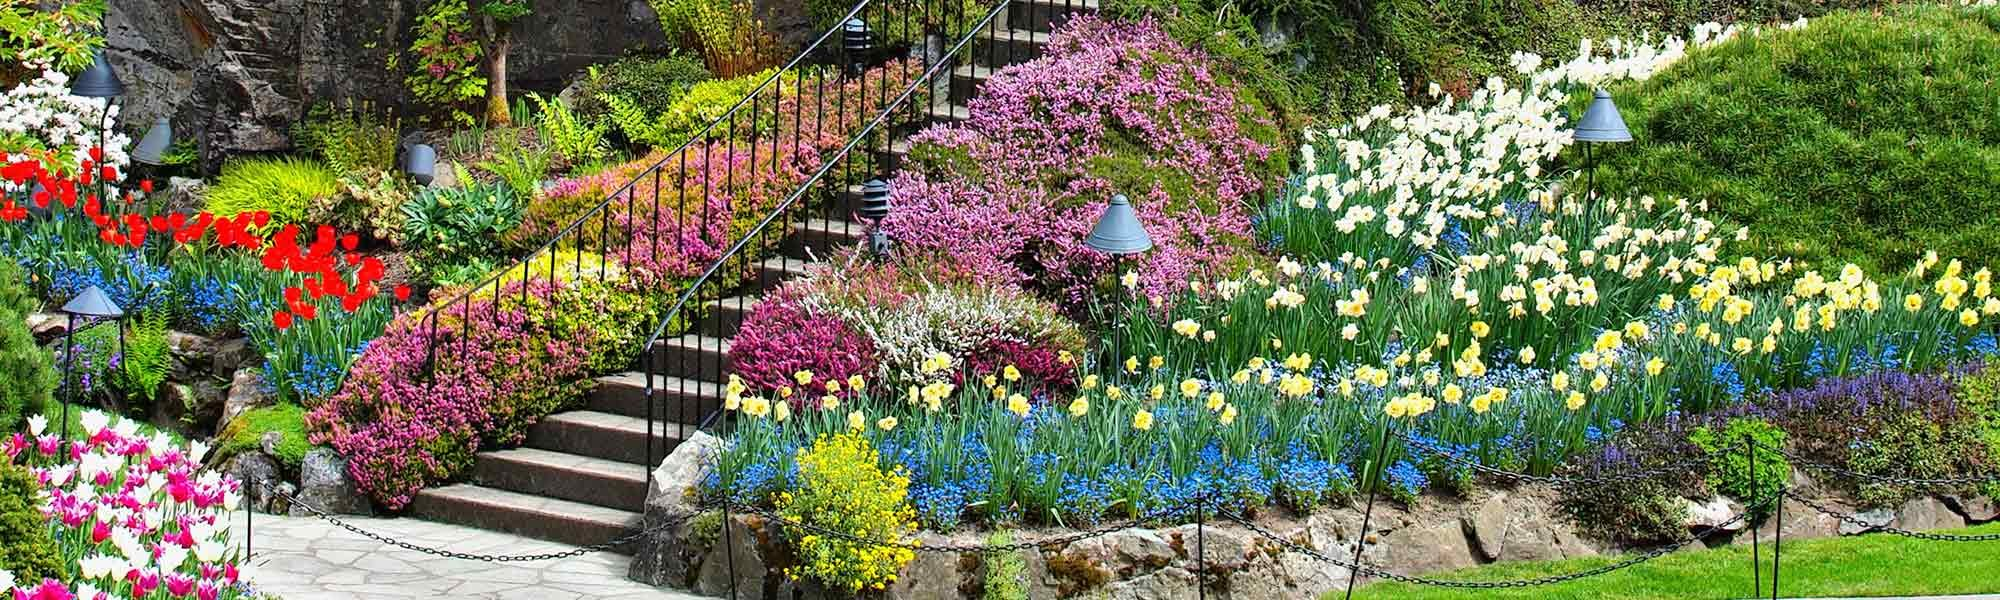 Stairs in a Flower Garden